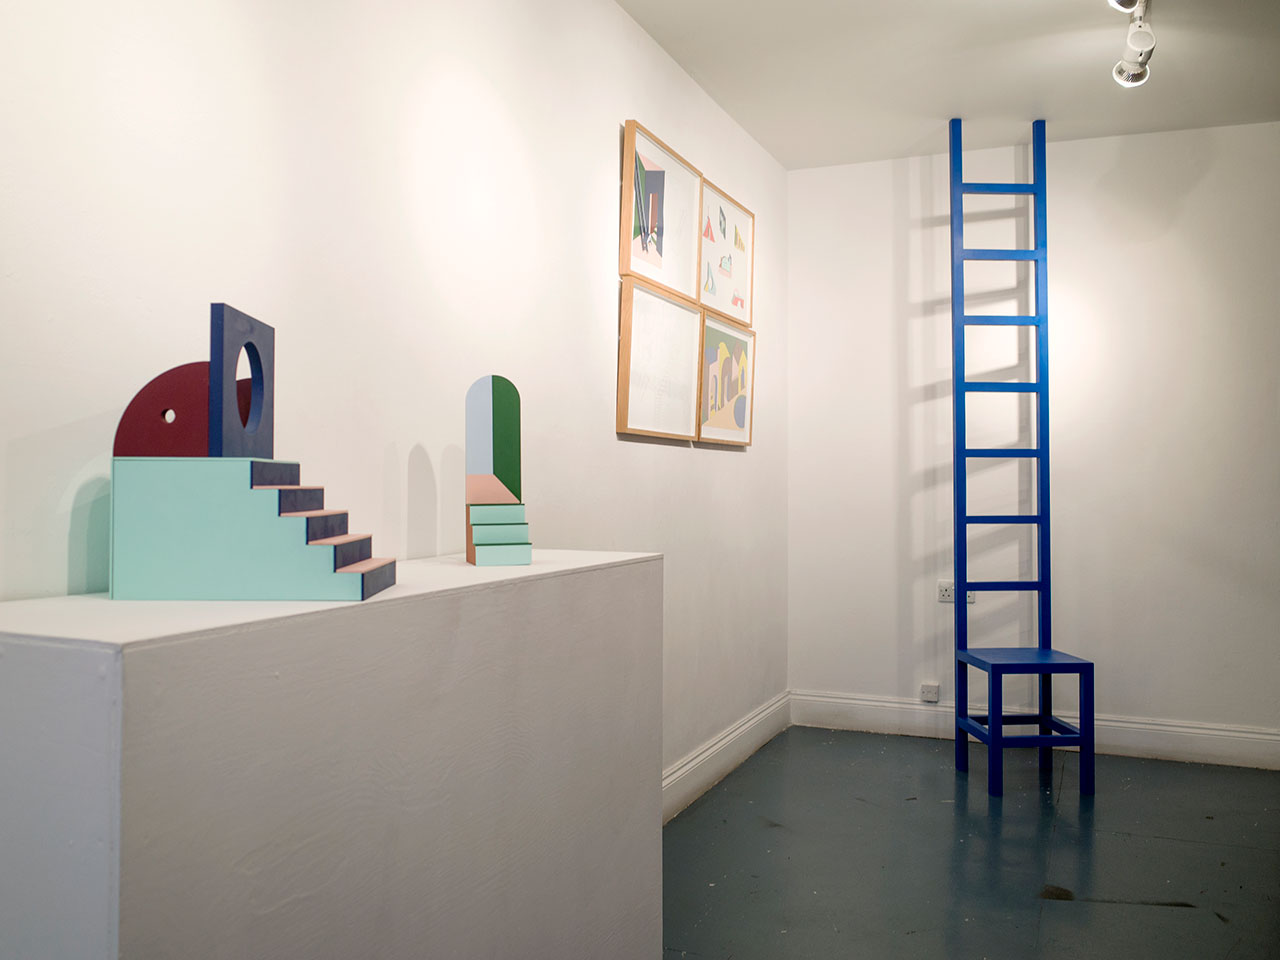 Emily Forgot, Neverland. Exhibition view from solo show at KK Outlet. Photo © Emily Forgot.